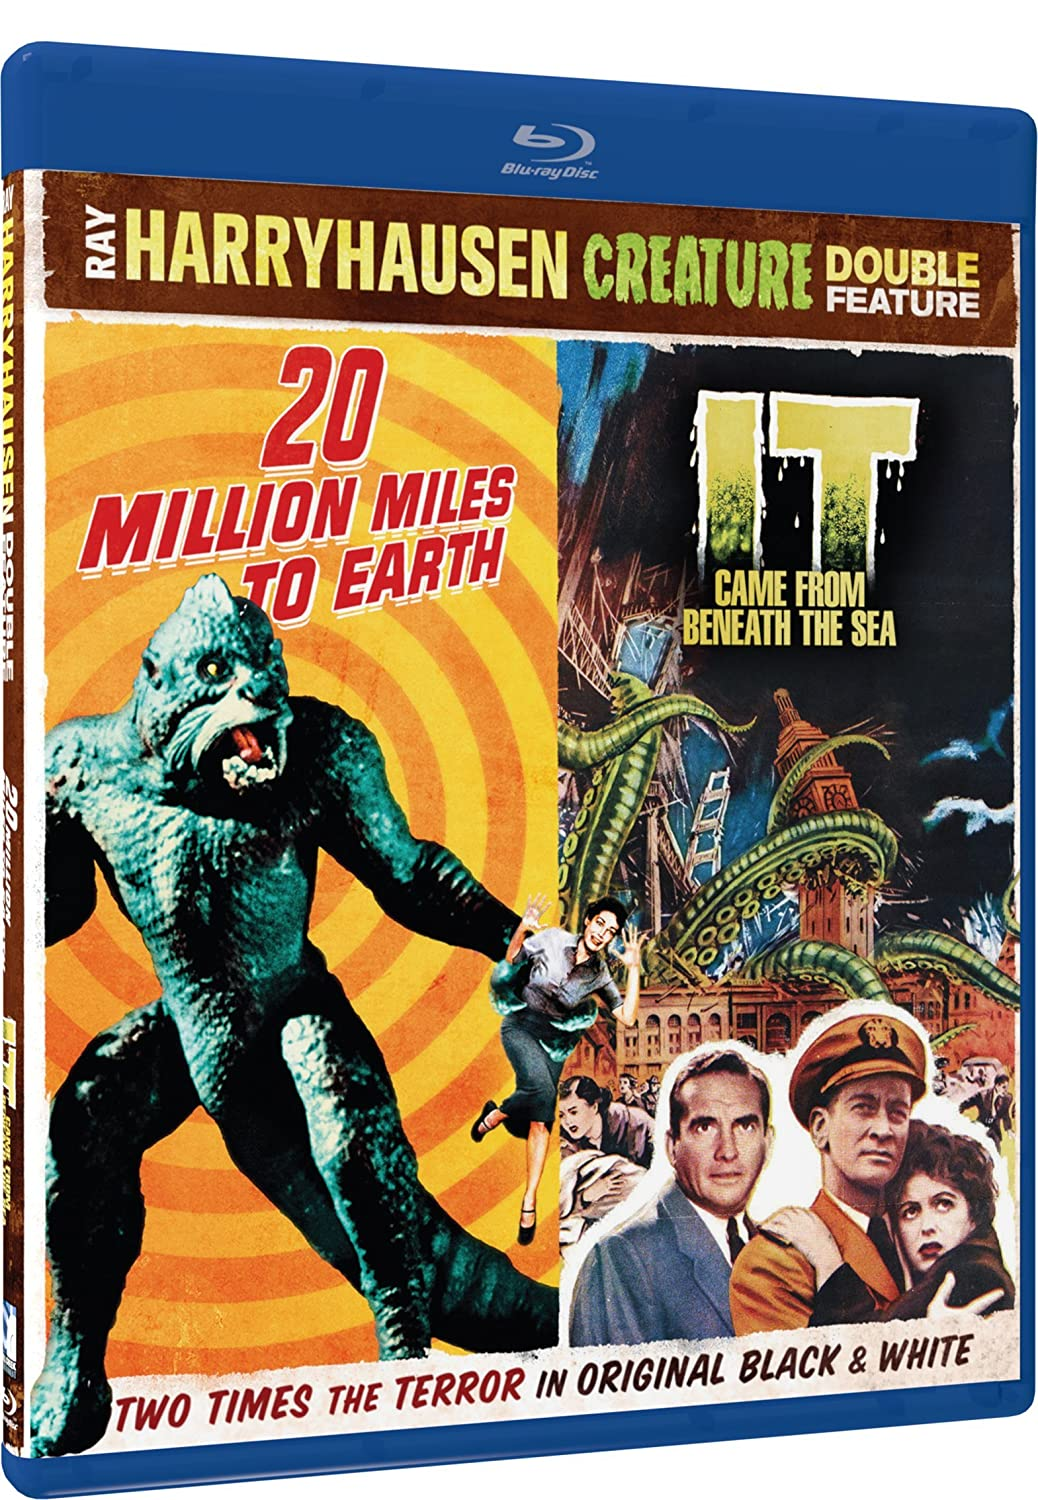 Amazon.com: 20 Million Miles To Earth / It Came From Beneath The Sea - Ray Harryhausen BD Double Feature [Blu-ray]: William Hopper, Joan Taylor, ...